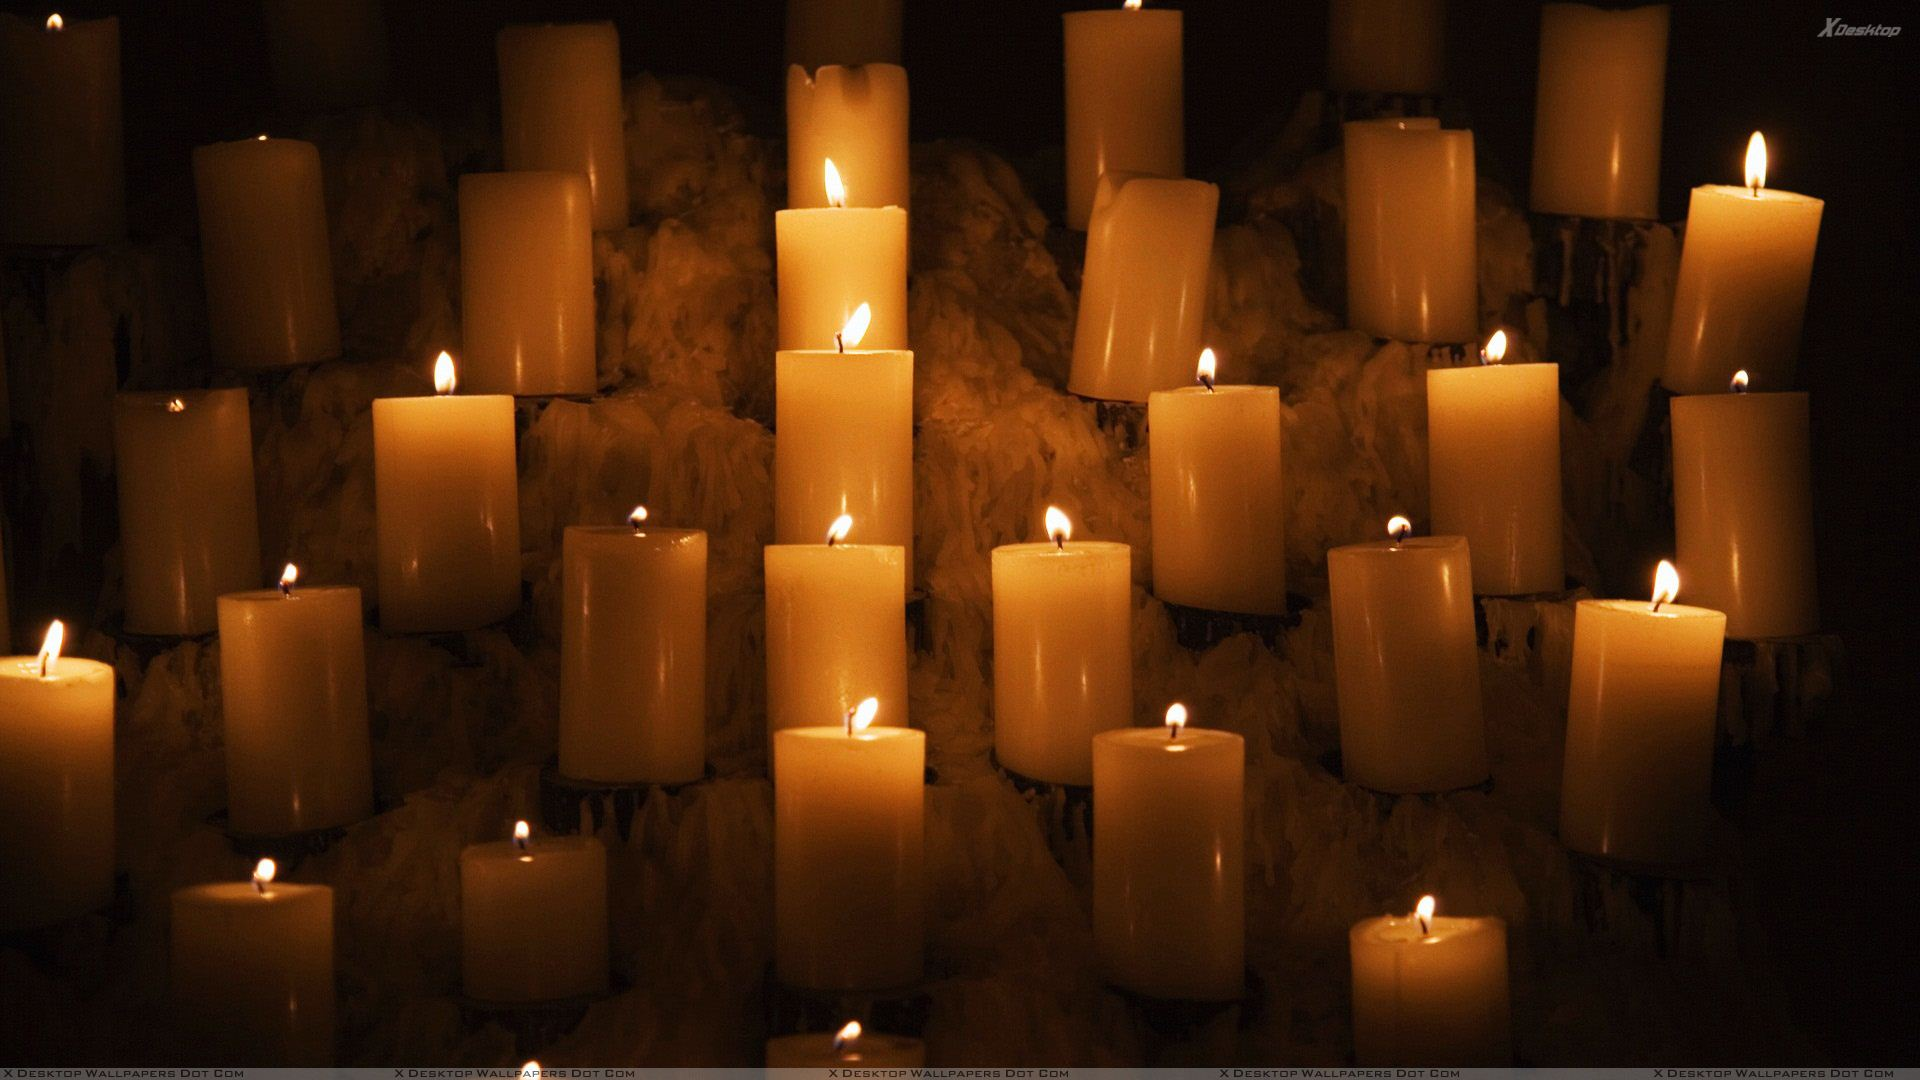 http://xdesktopwallpapers.com/wp-content/uploads/2012/07/Candle%20Lights%20In%20Church.jpg